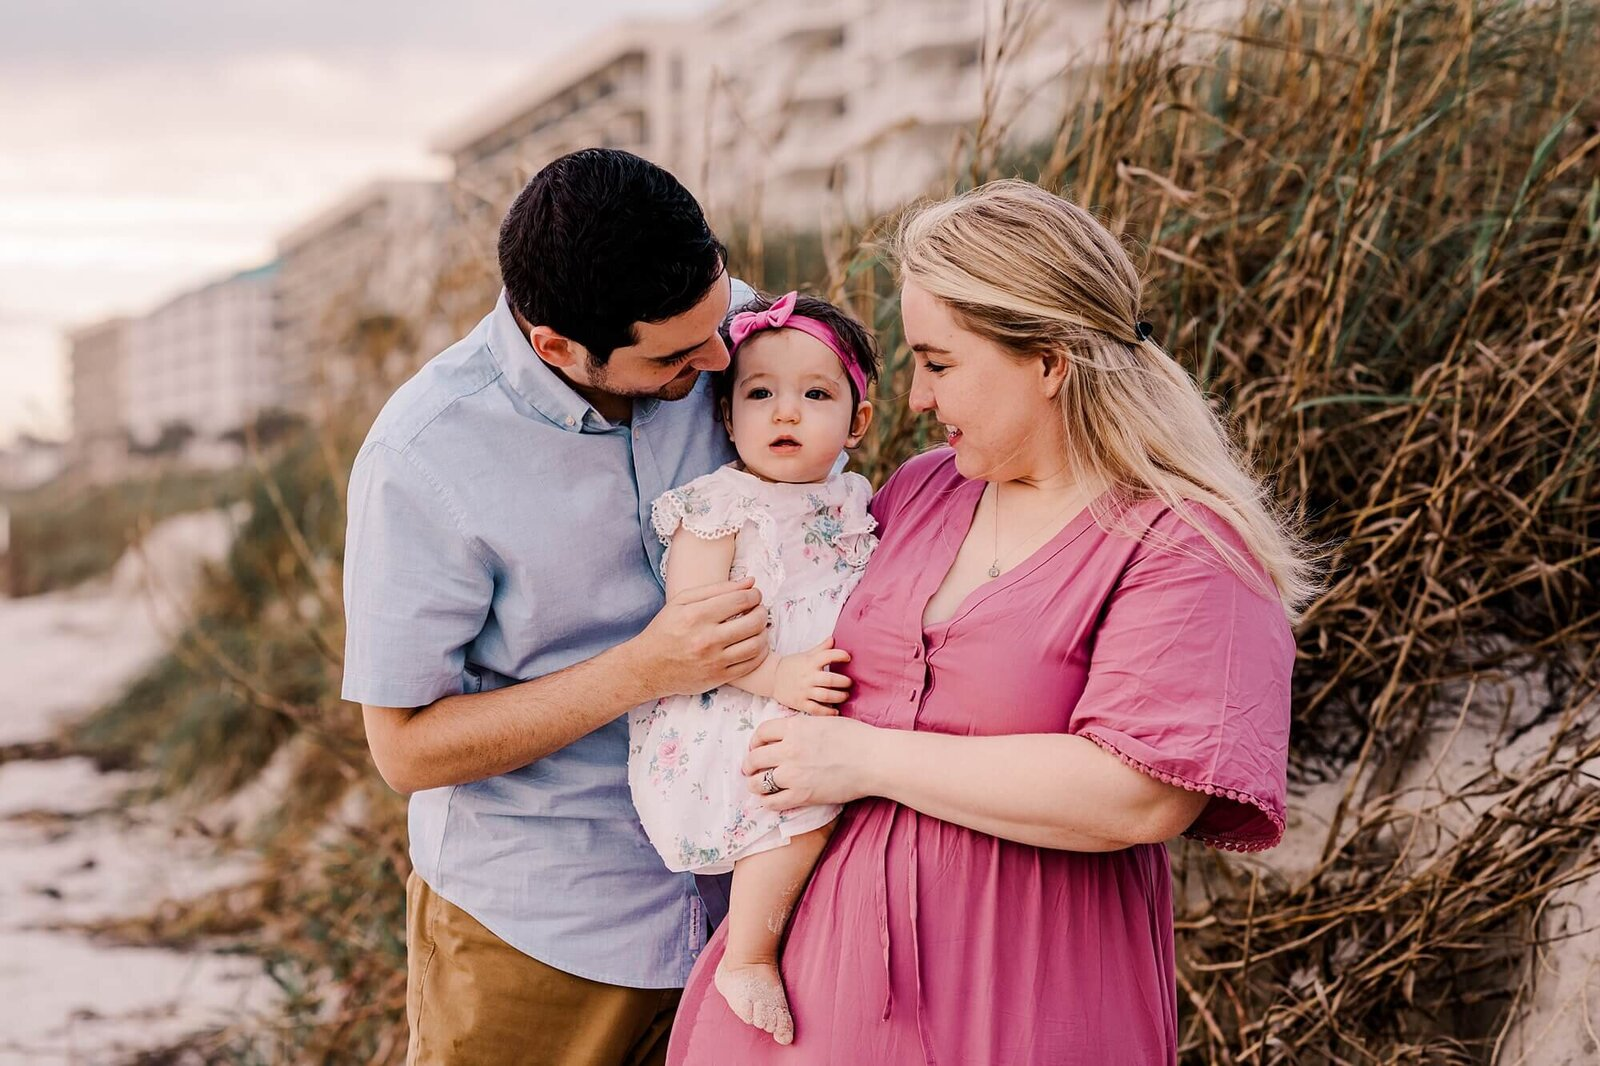 winterhaven-park-family-session-new-smyrna-beach-haleigh-nicole-photography_0041